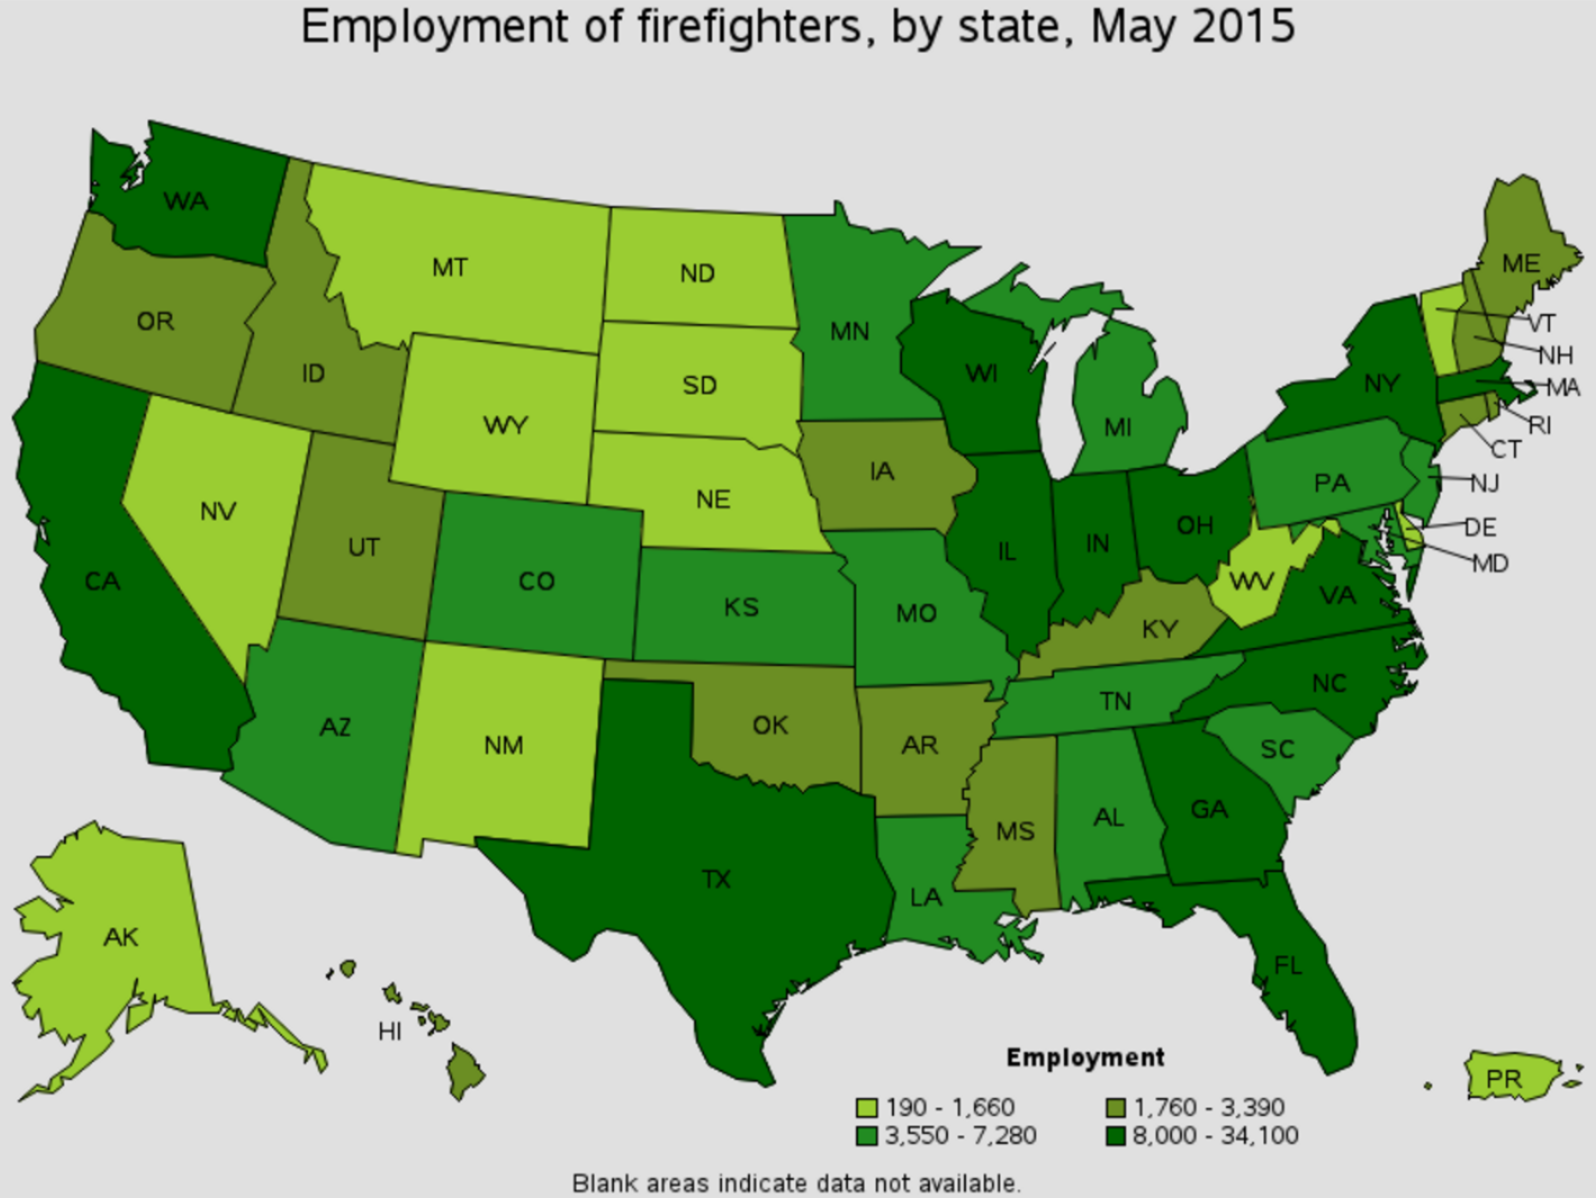 firefighter job outlook by state Olathe Kansas